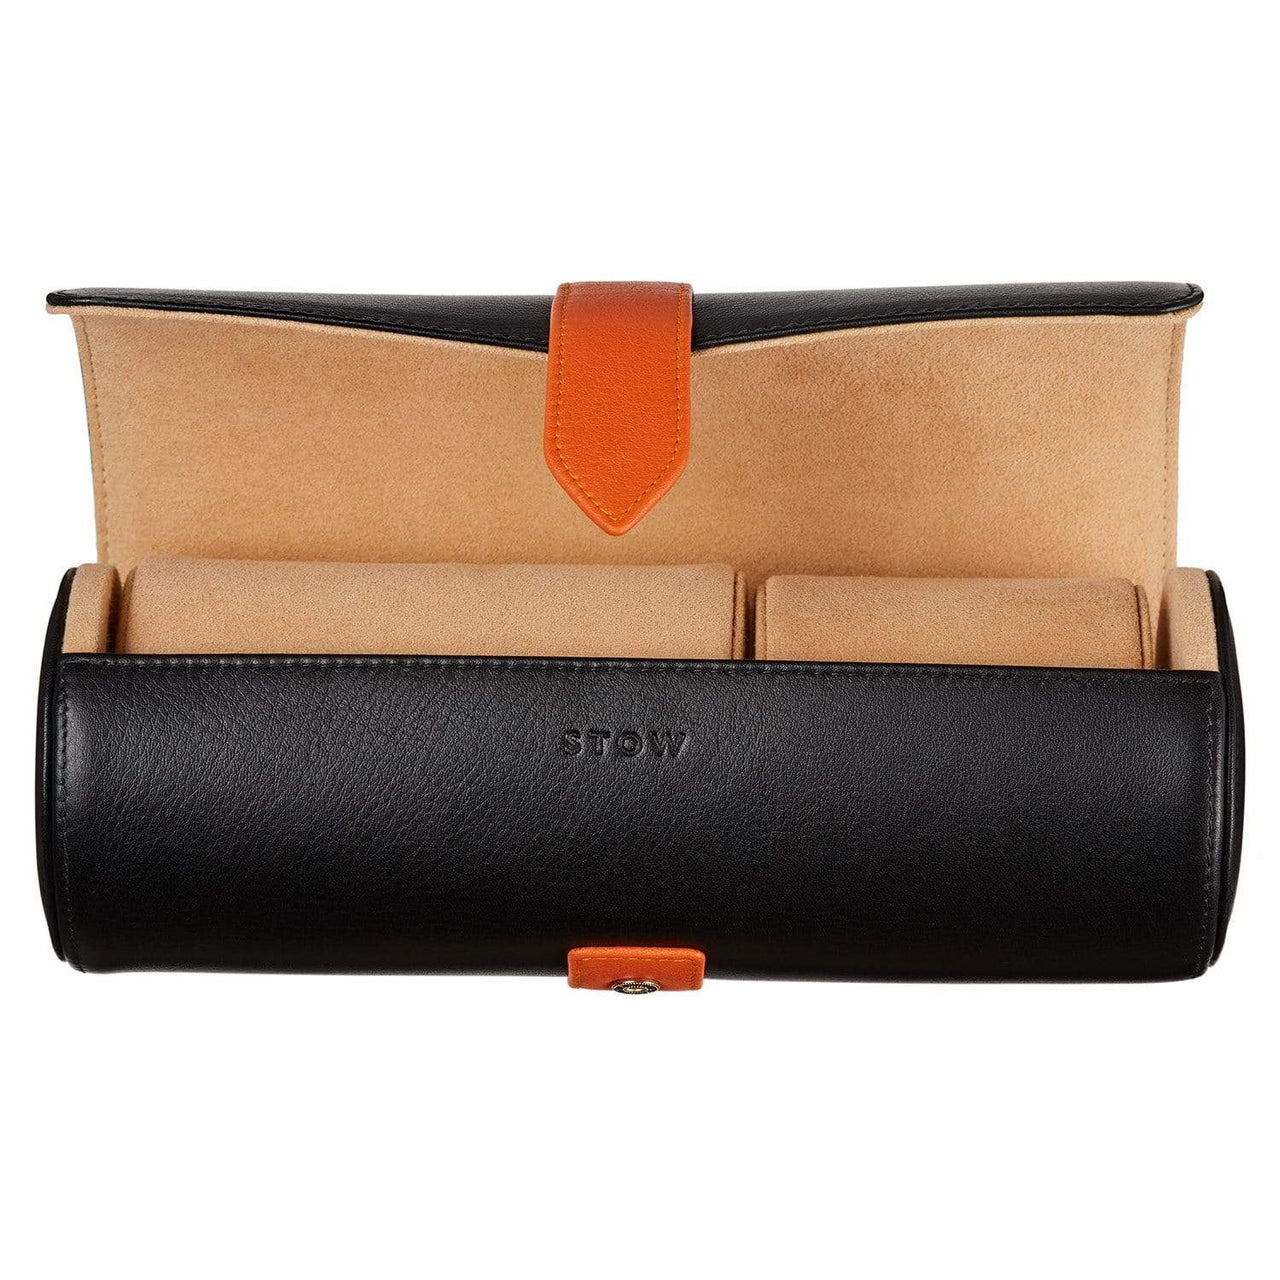 STOW Wallets, Pouches & Accessories Jet & Soft Sand Sanderson Leather Watch Roll